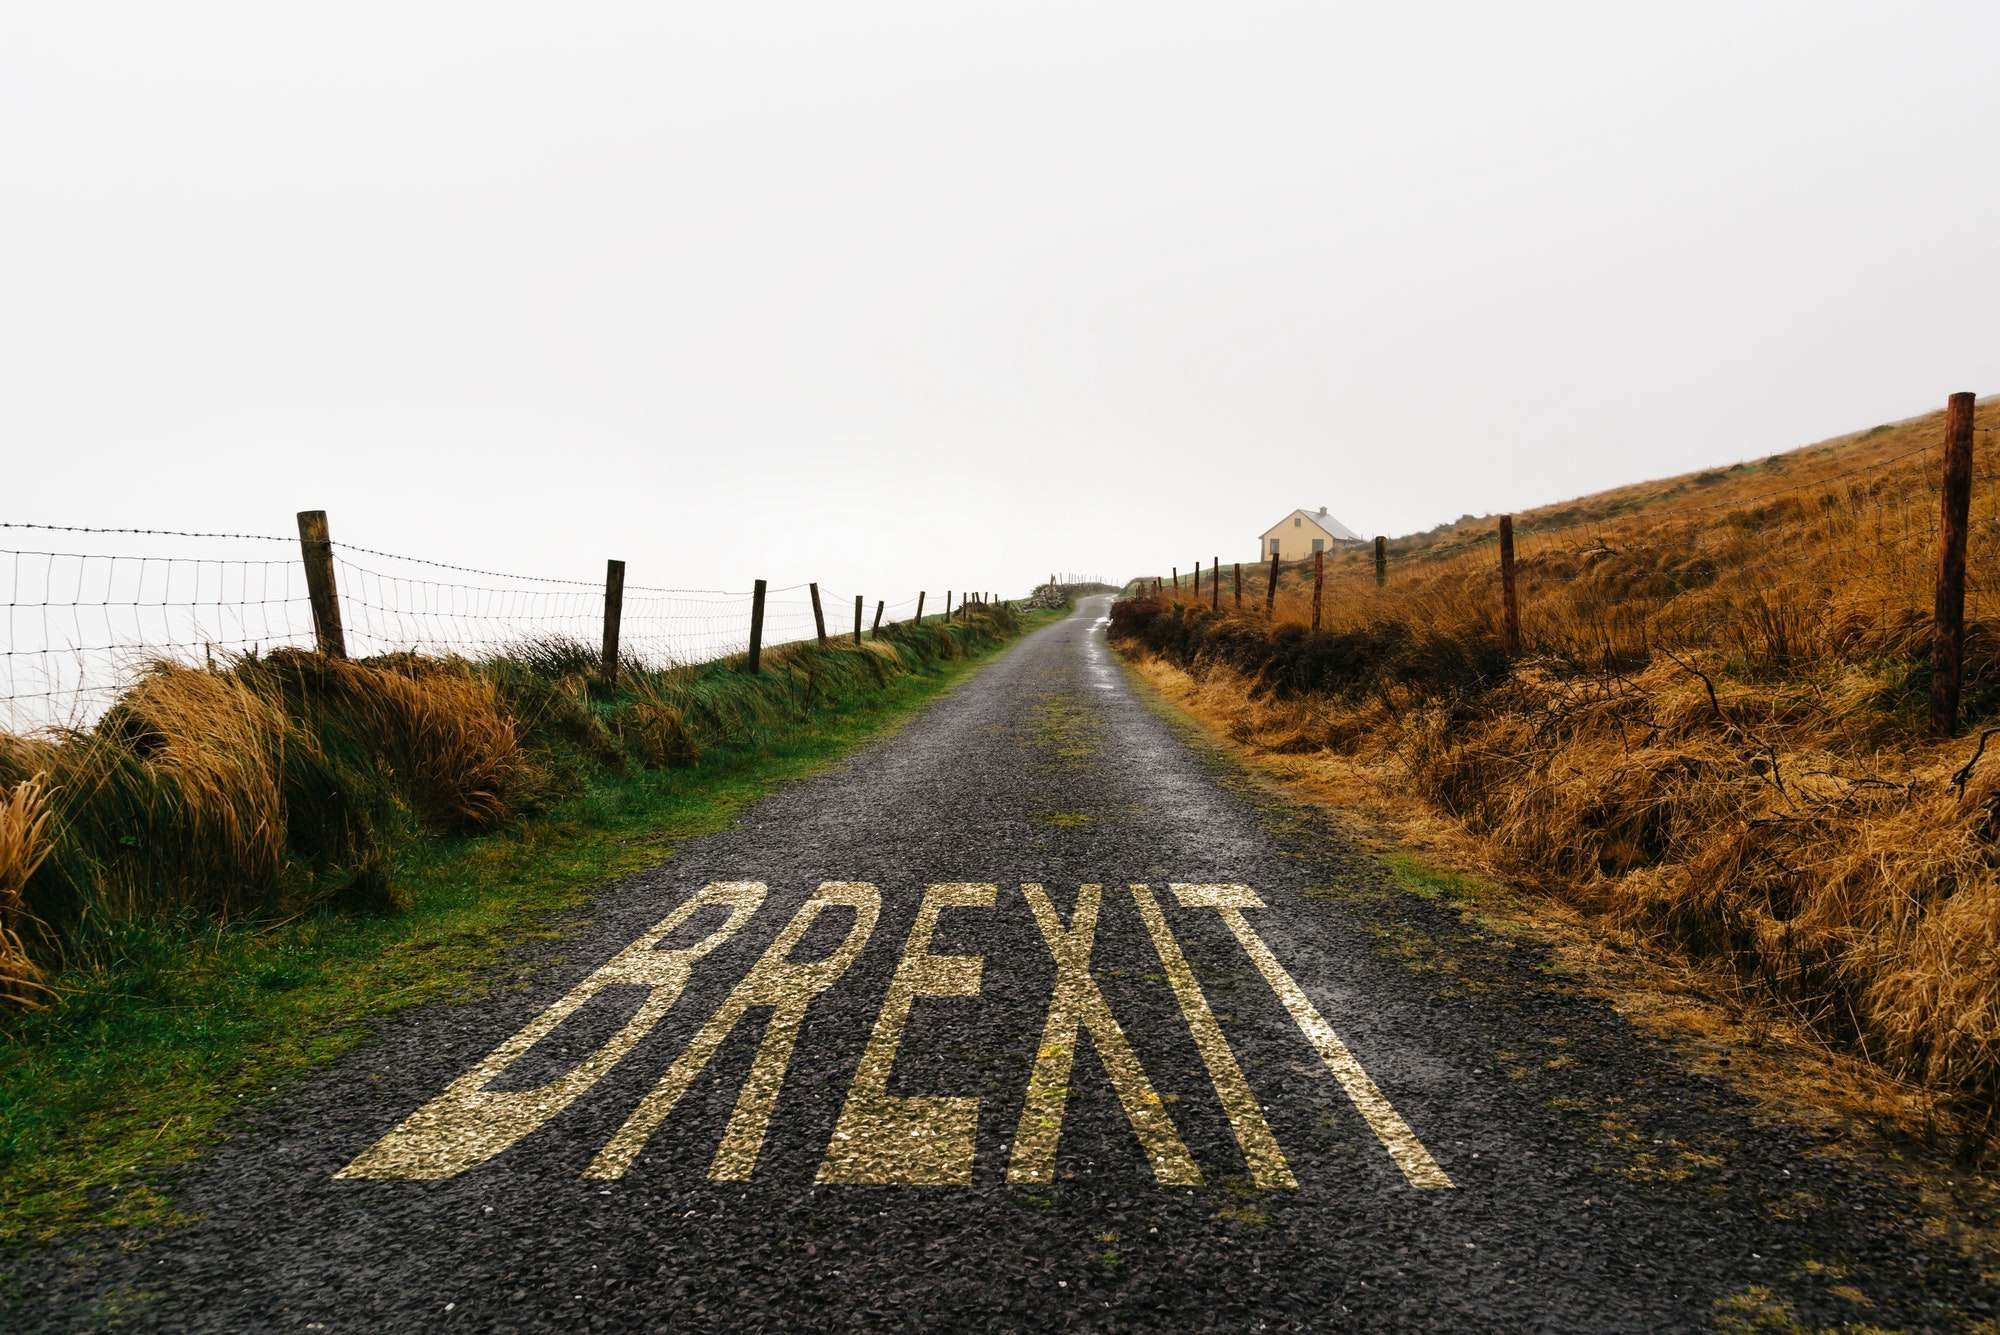 Concept of BREXIT. Road marking with the word Brexit painted on remote road a misty day